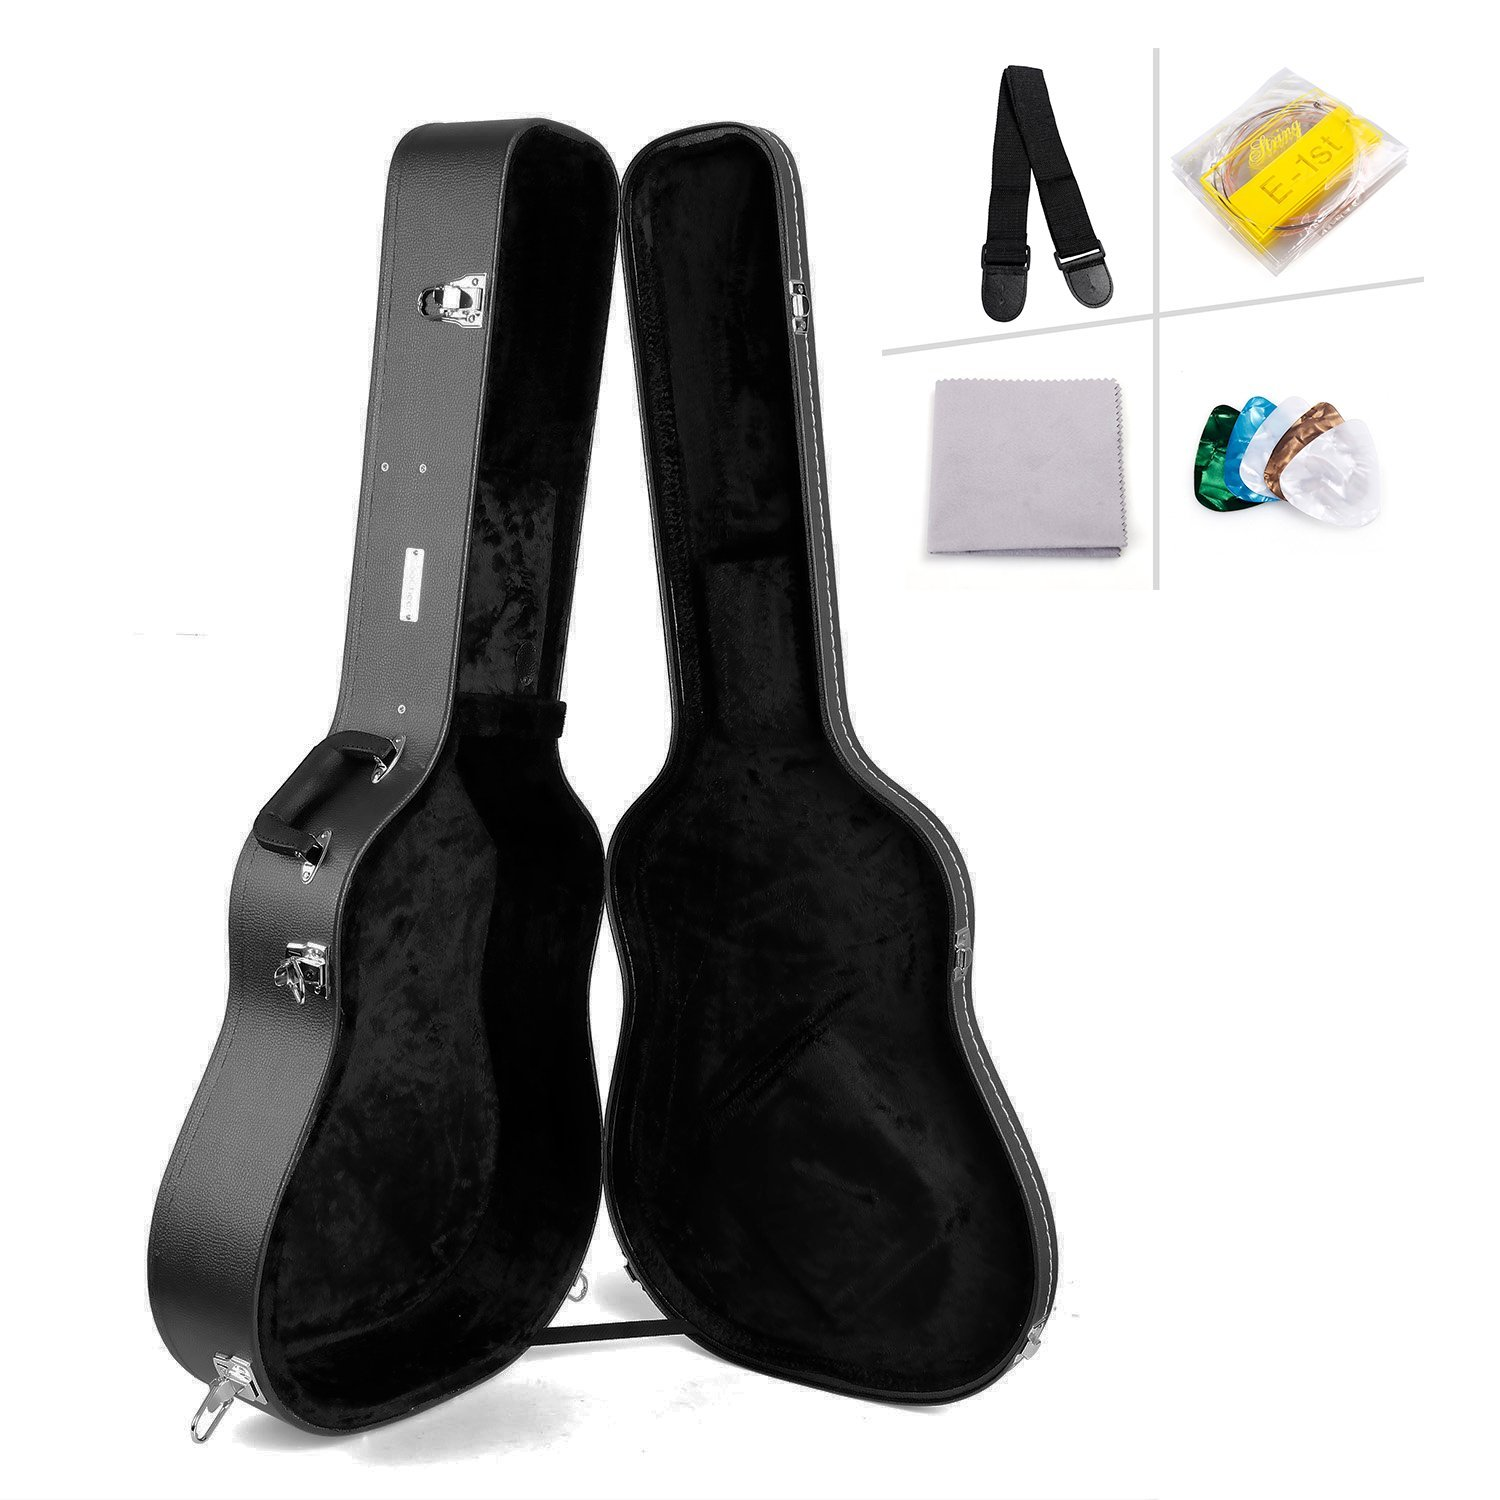 Coocheer Acoustic Guitar Case Dreadnought Hard Shell Leather Guitar Case with Picks, String, Wiper, Guitar Strap-for 41'' Acoustic Guitar,Classic Guitar (black)